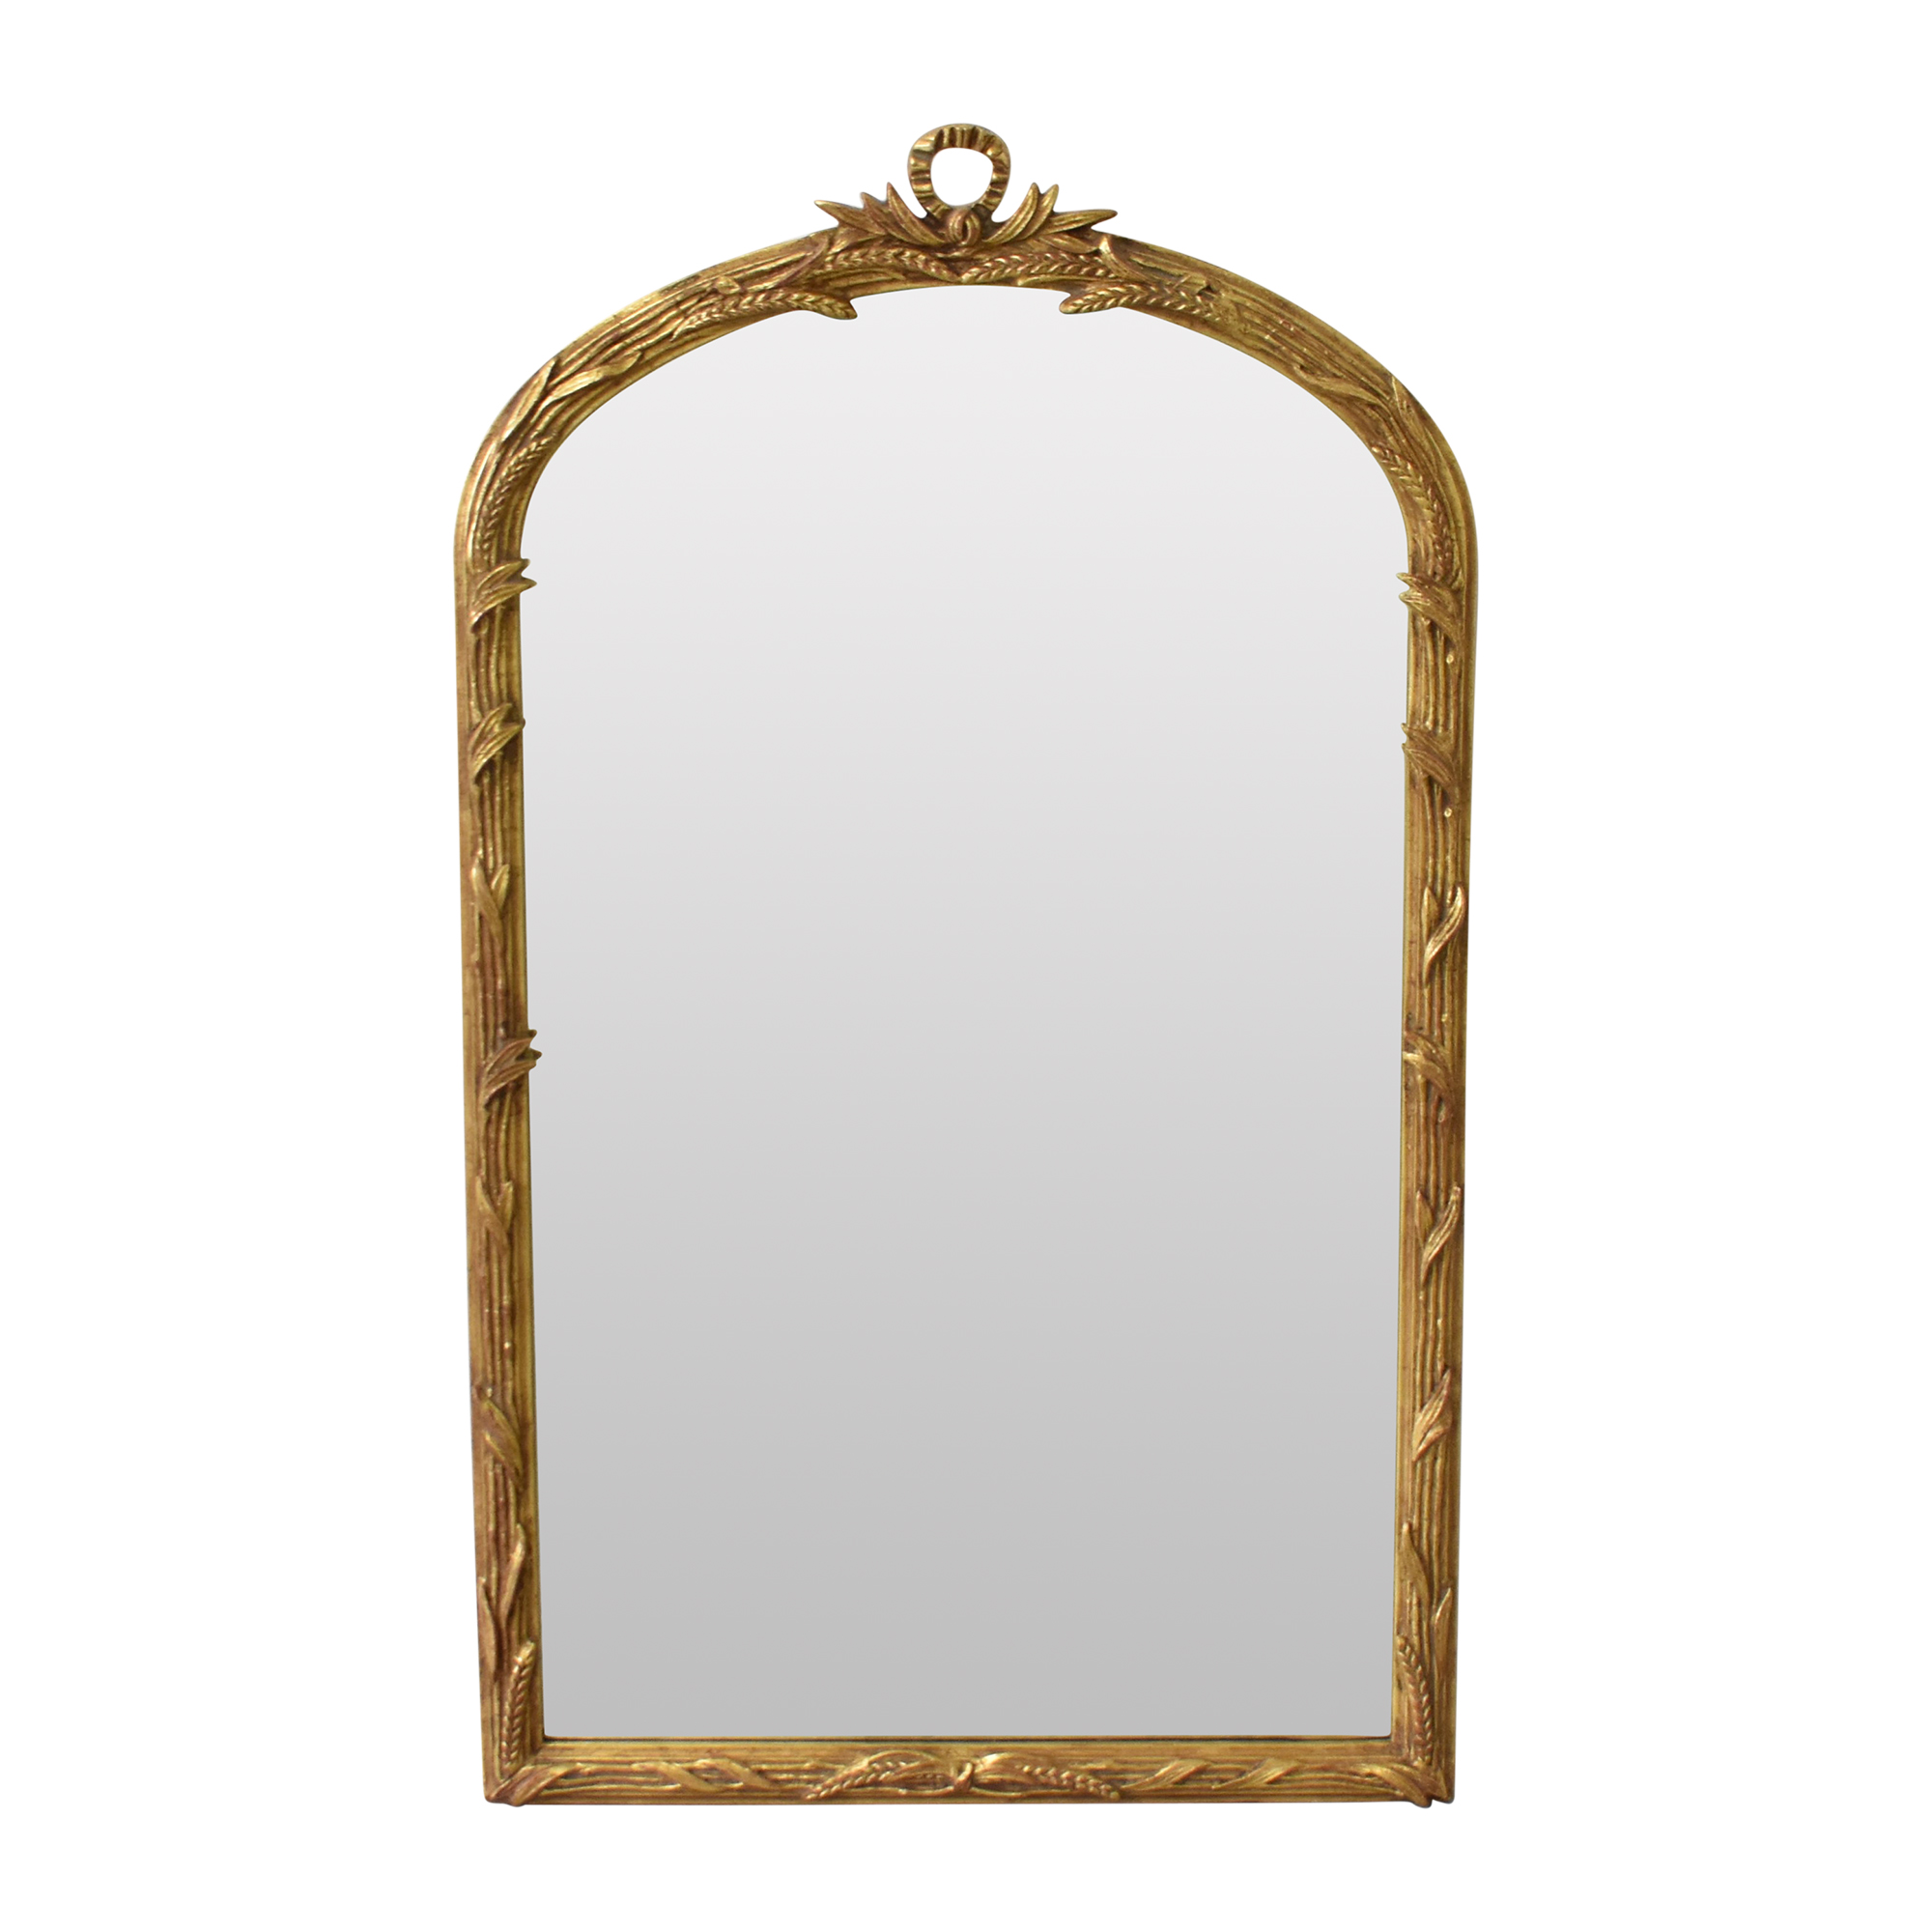 buy Friedman Brothers Friedman Brothers Decorative Arts Wall Mirror online